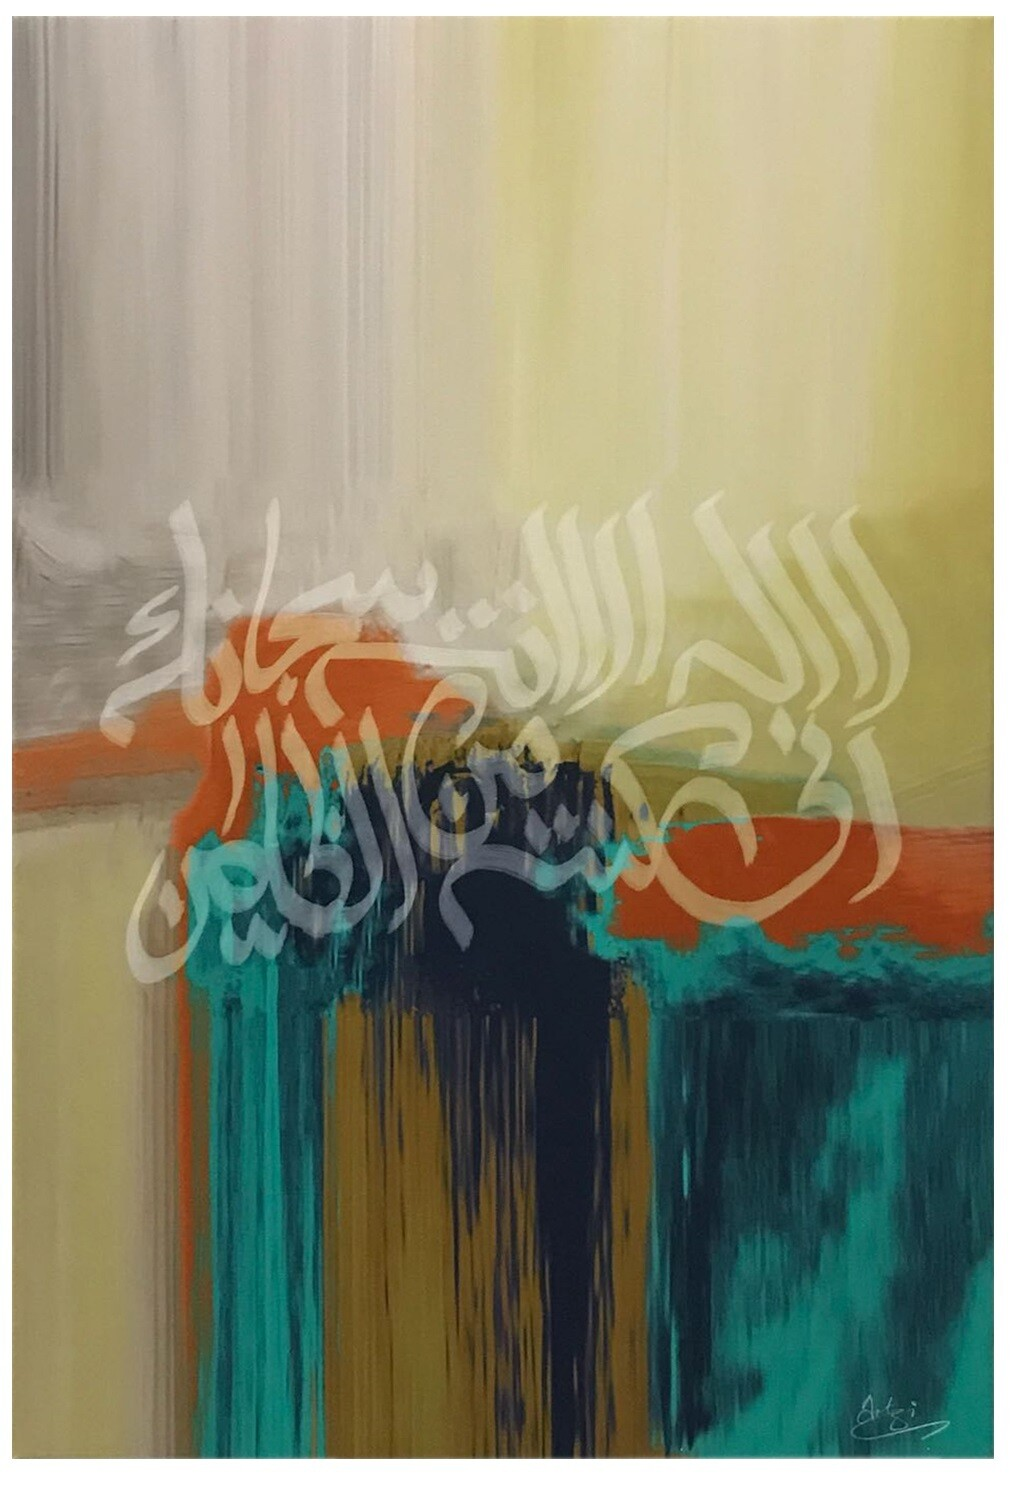 Ayat e Karima Abstract Design Original Giclee Canvas